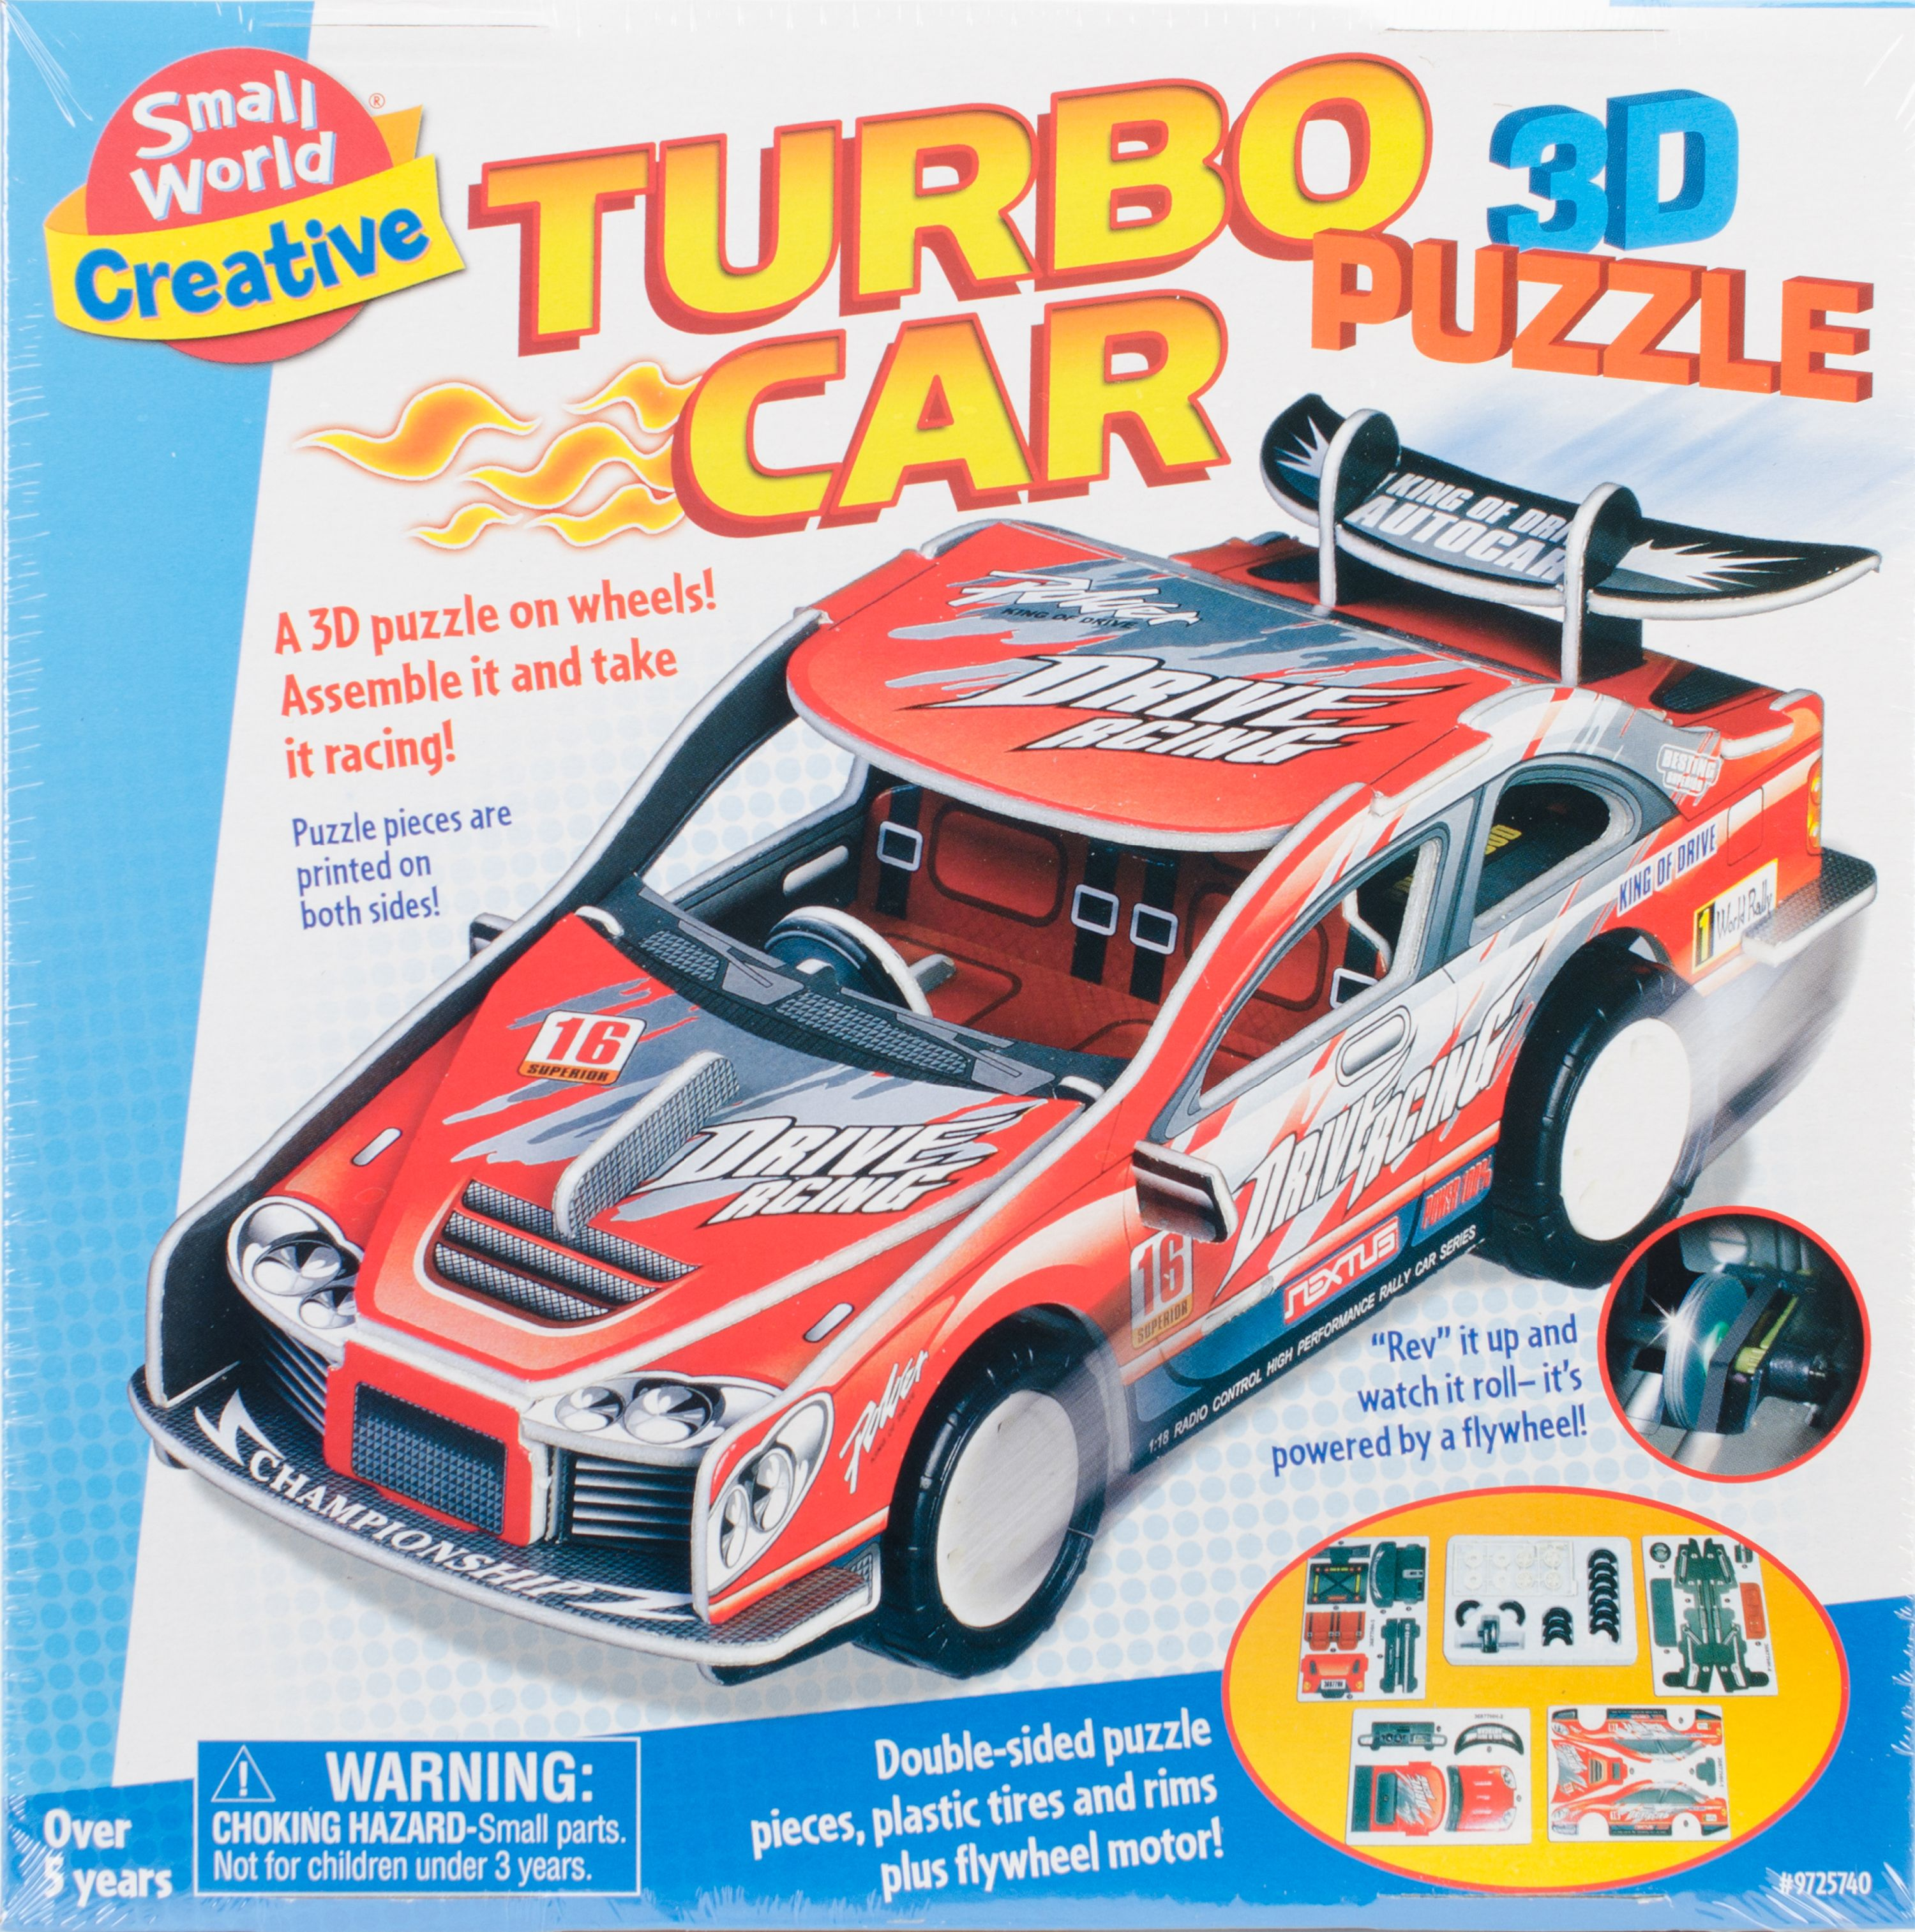 Turbo Car 3D Puzzle by Small World Toys Creative